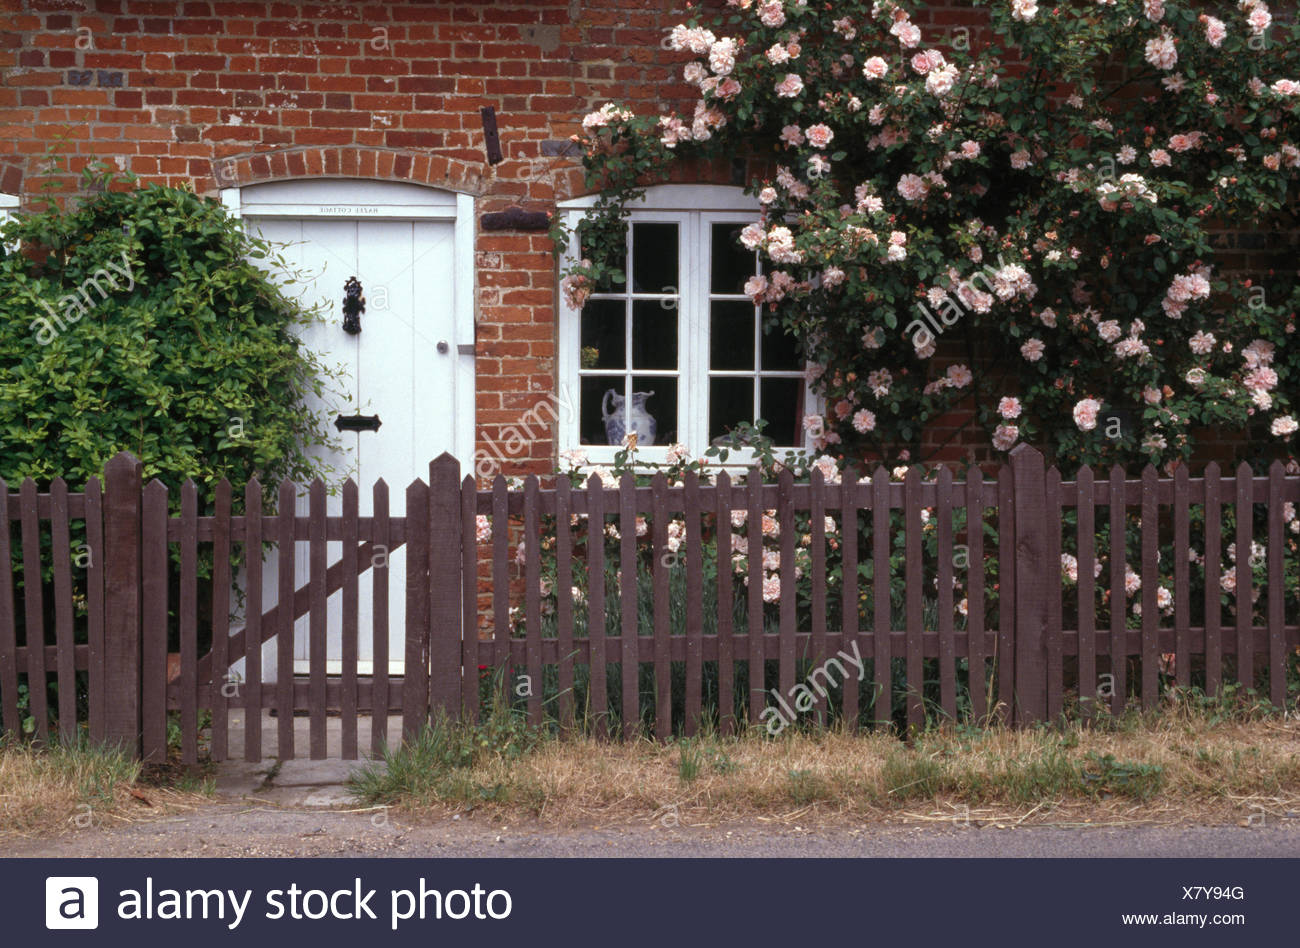 exteriors windows stockfotos exteriors windows bilder seite 5 alamy. Black Bedroom Furniture Sets. Home Design Ideas